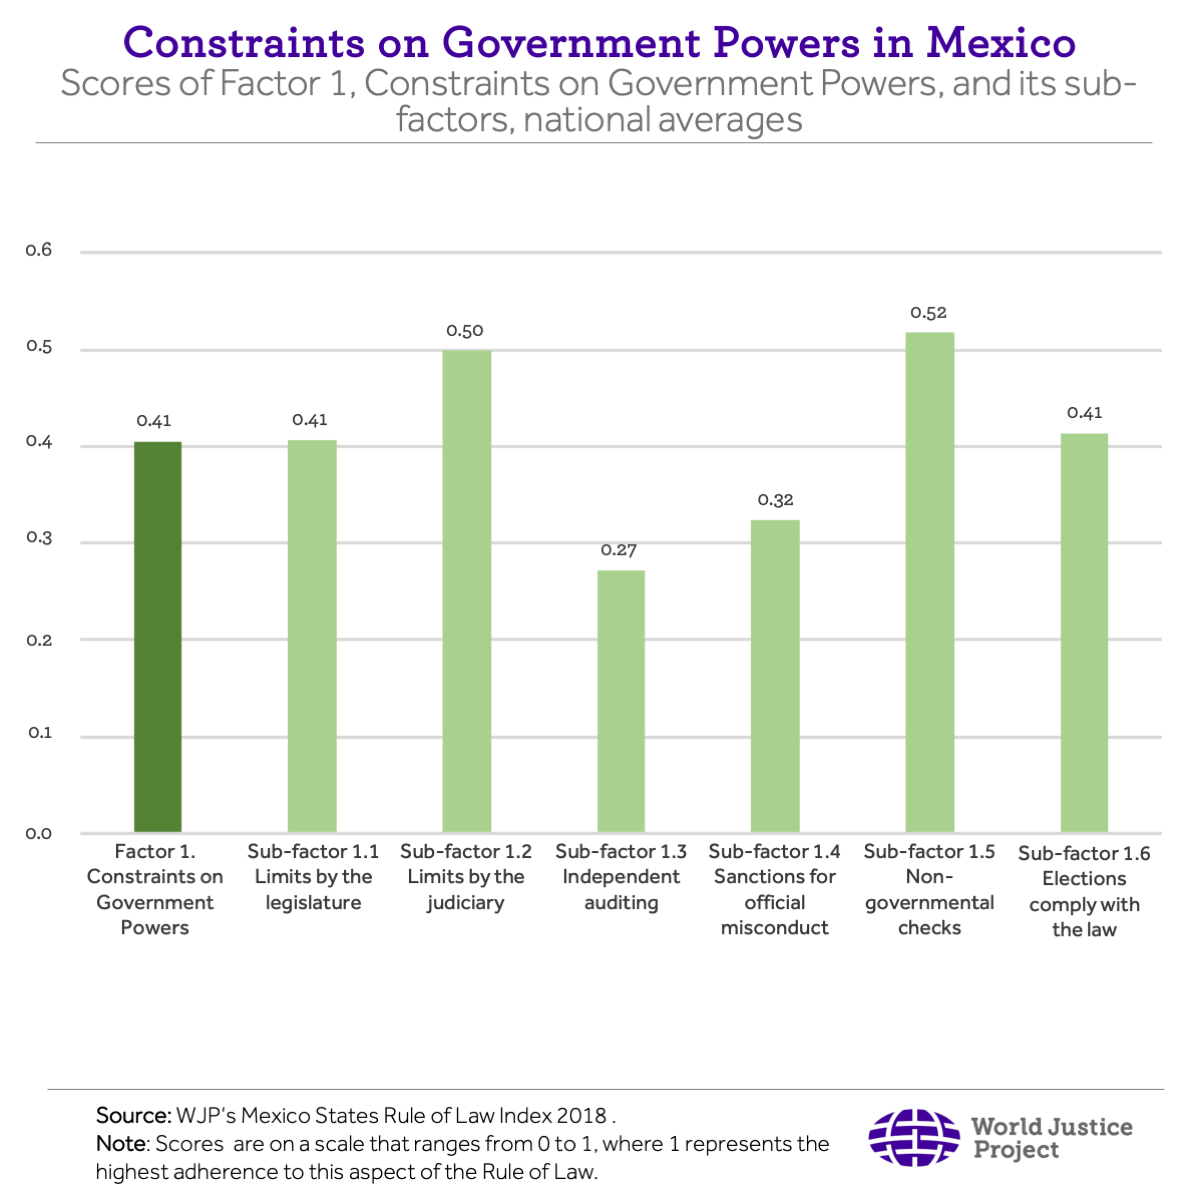 Constraints on Government Powers in Mexico